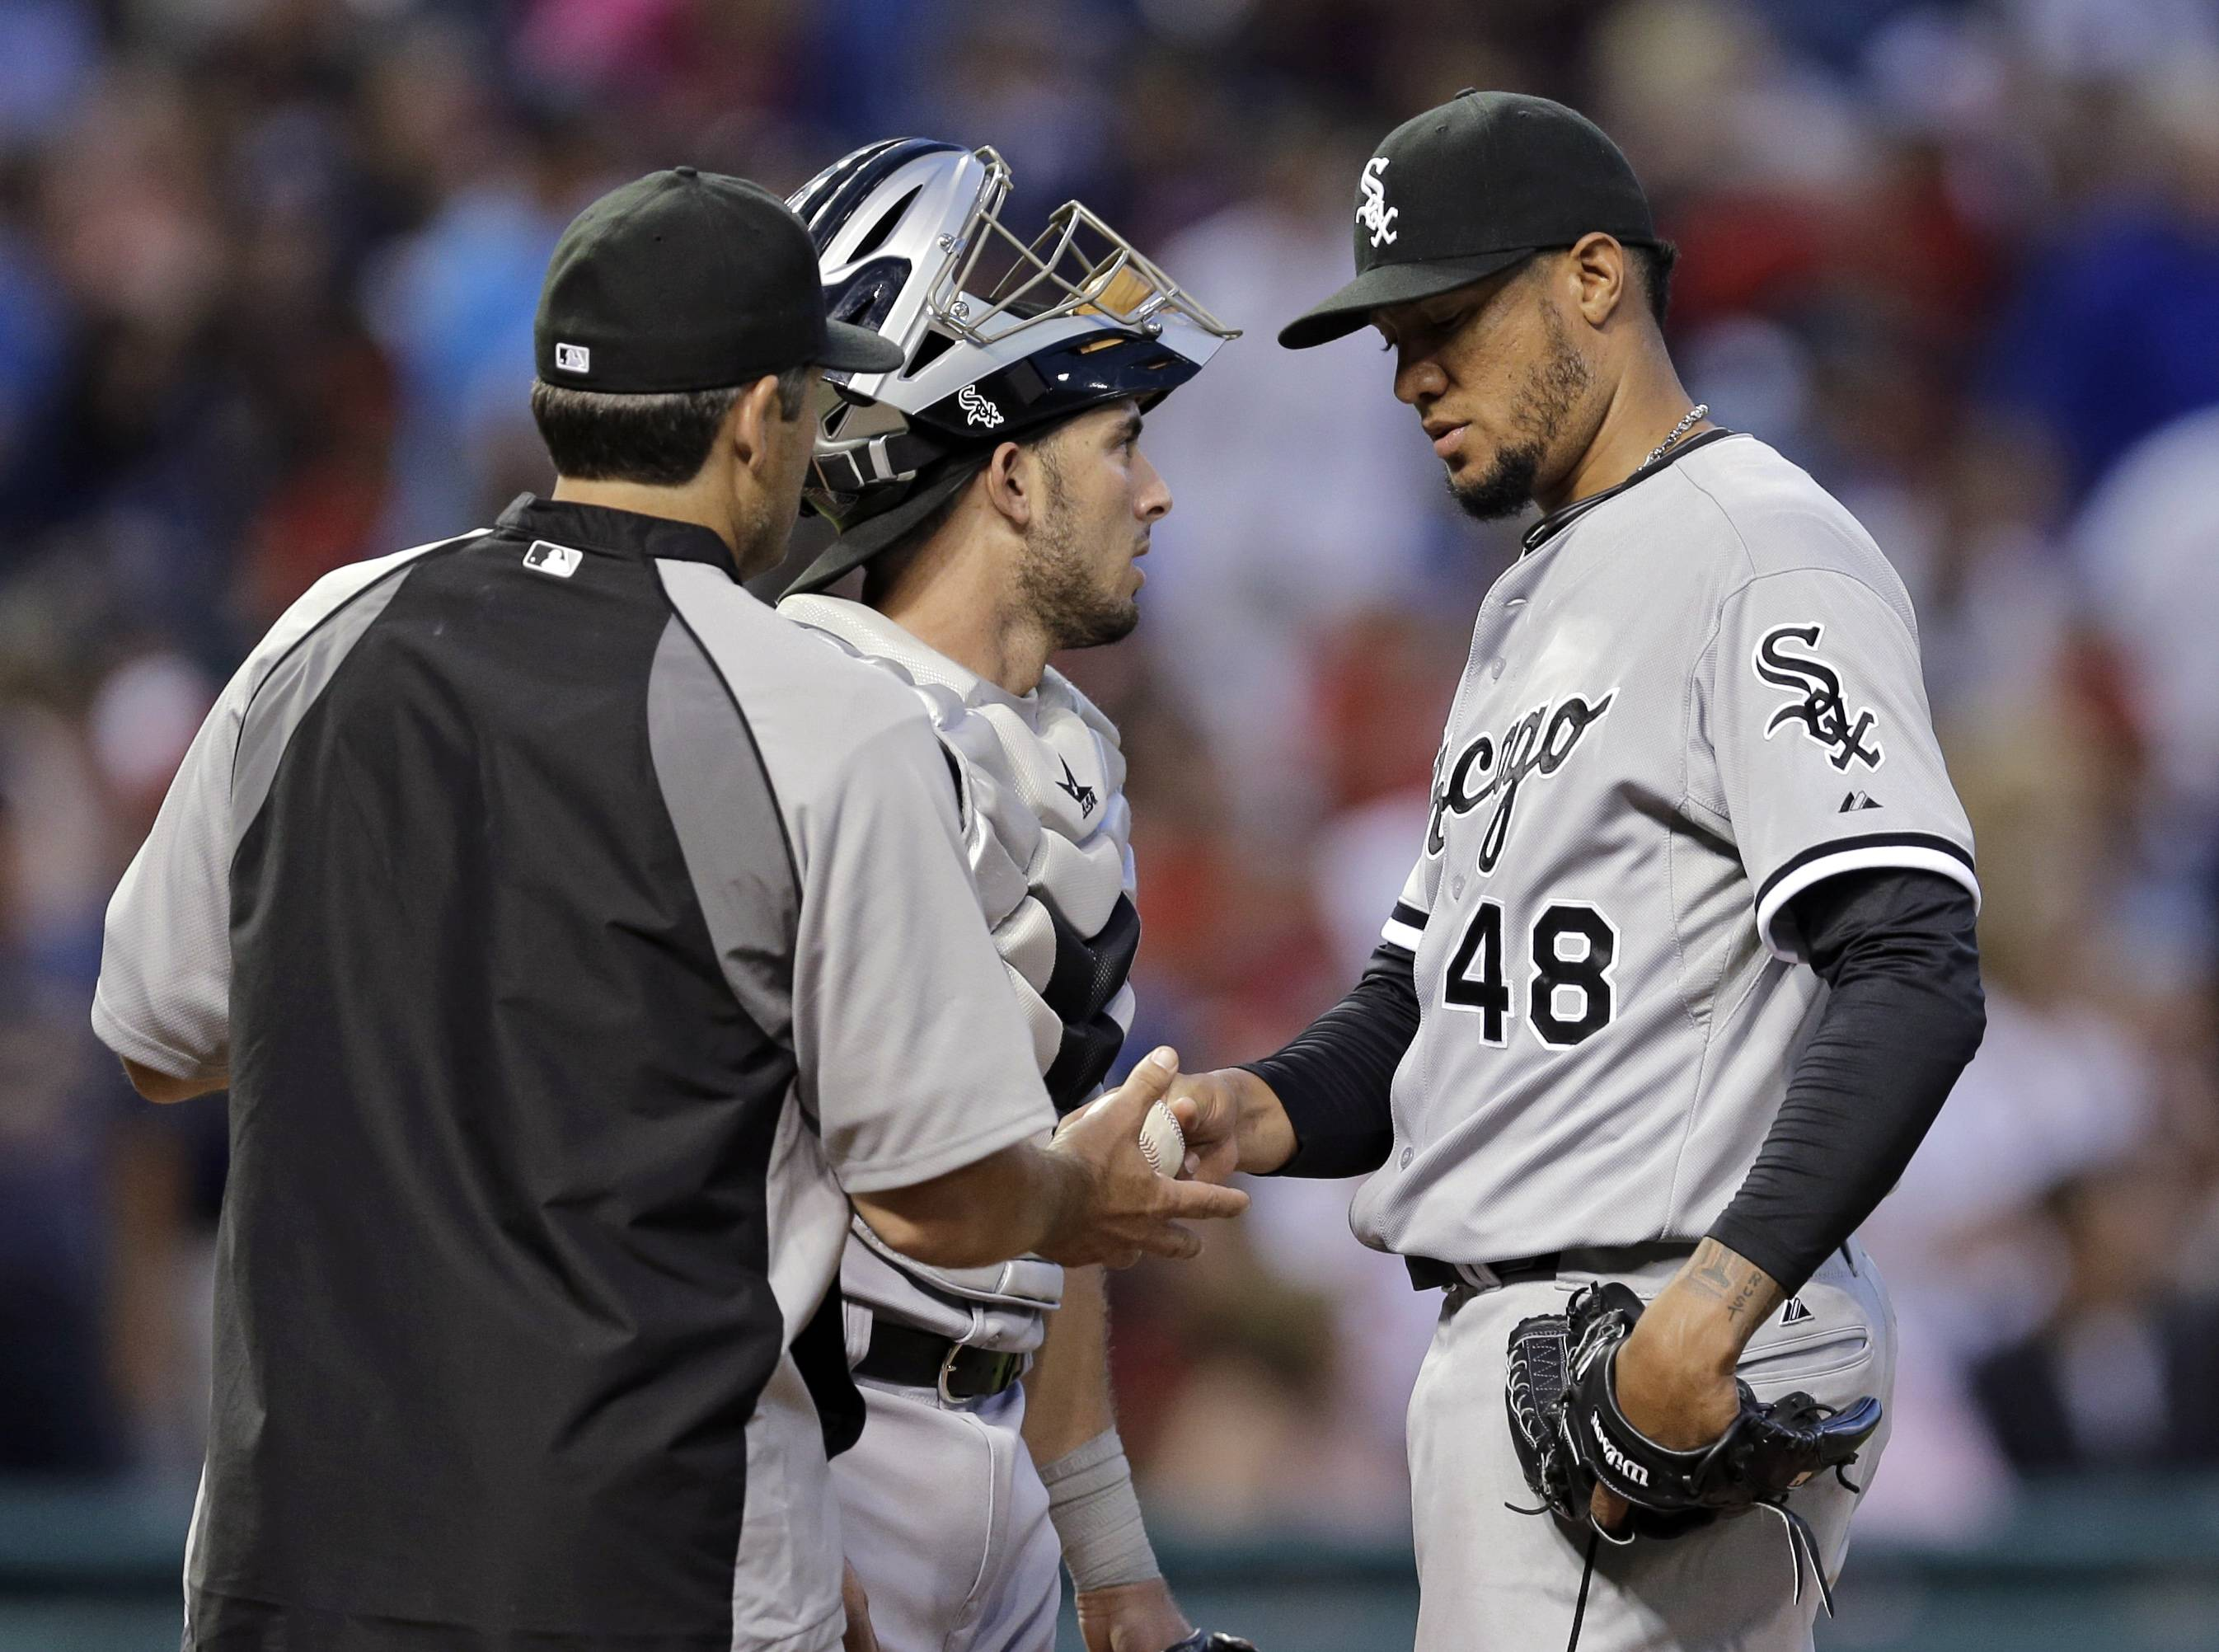 White Sox manager Robin Ventura, left, takes the ball from starting pitcher Hector Noesi (48) in the fifth inning last Friday. Noesi had just given up a 2-run home run to Indians' Nick Swisher.